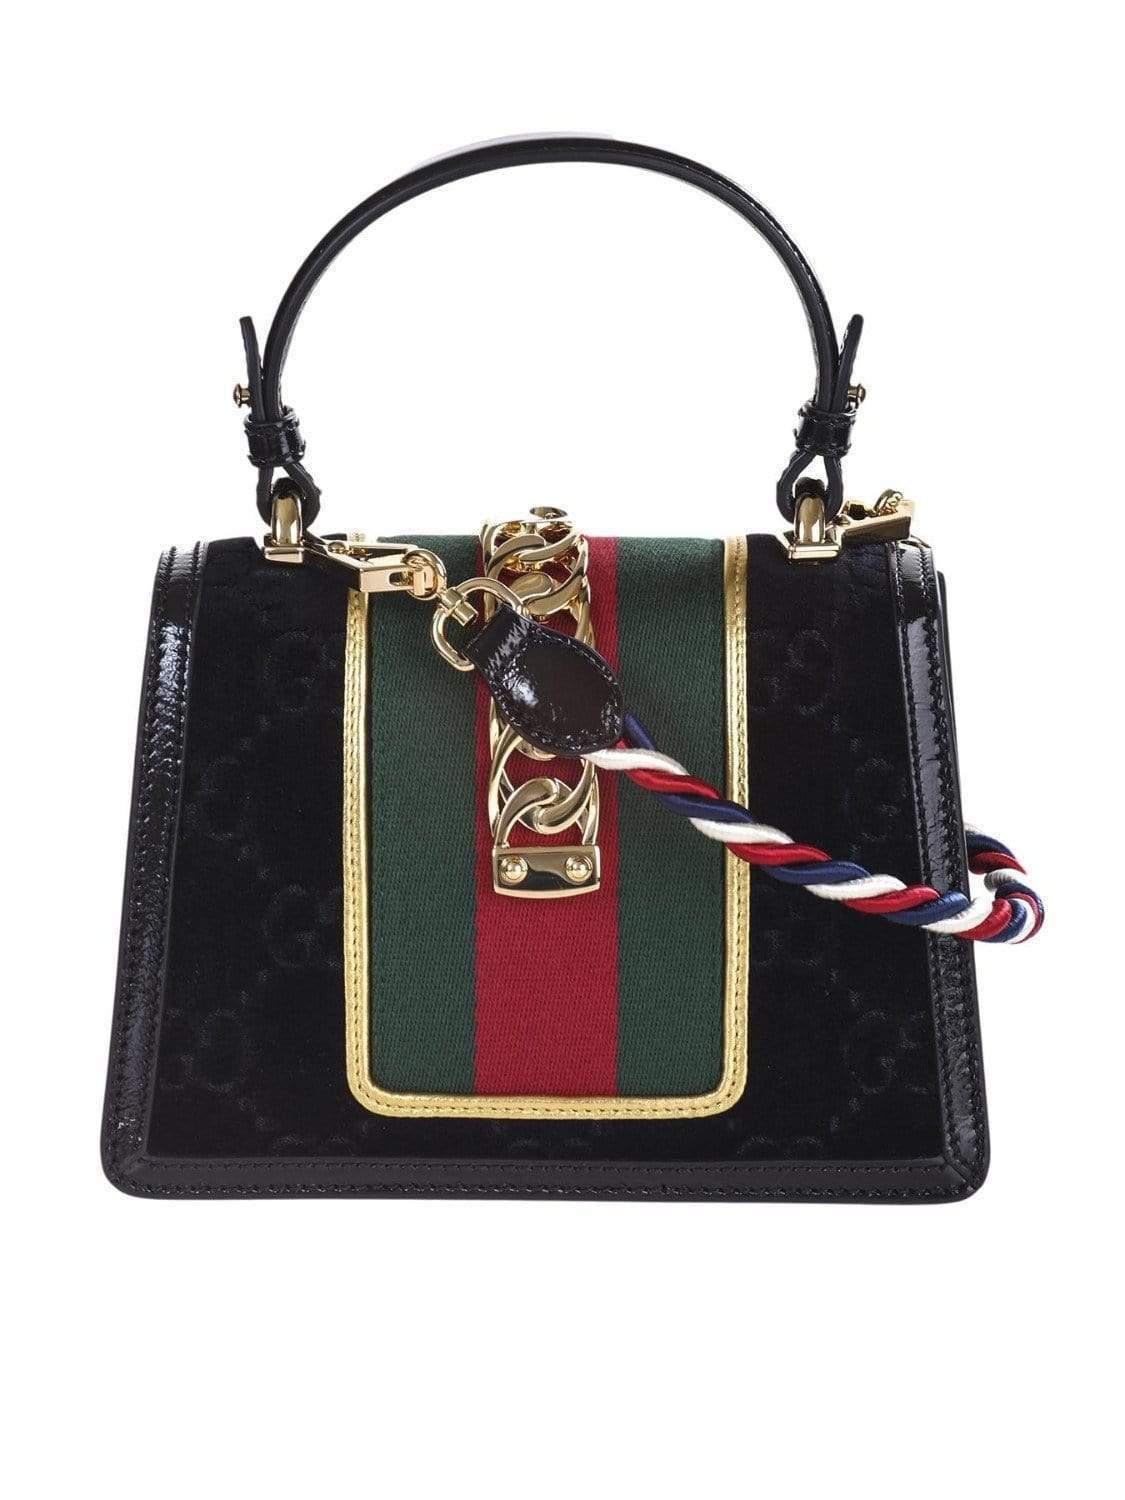 cdc34d14963 Lyst - Gucci Sylvie Mini Bag In Gg Black Velvet With Black Patent Leather  Trim in Black